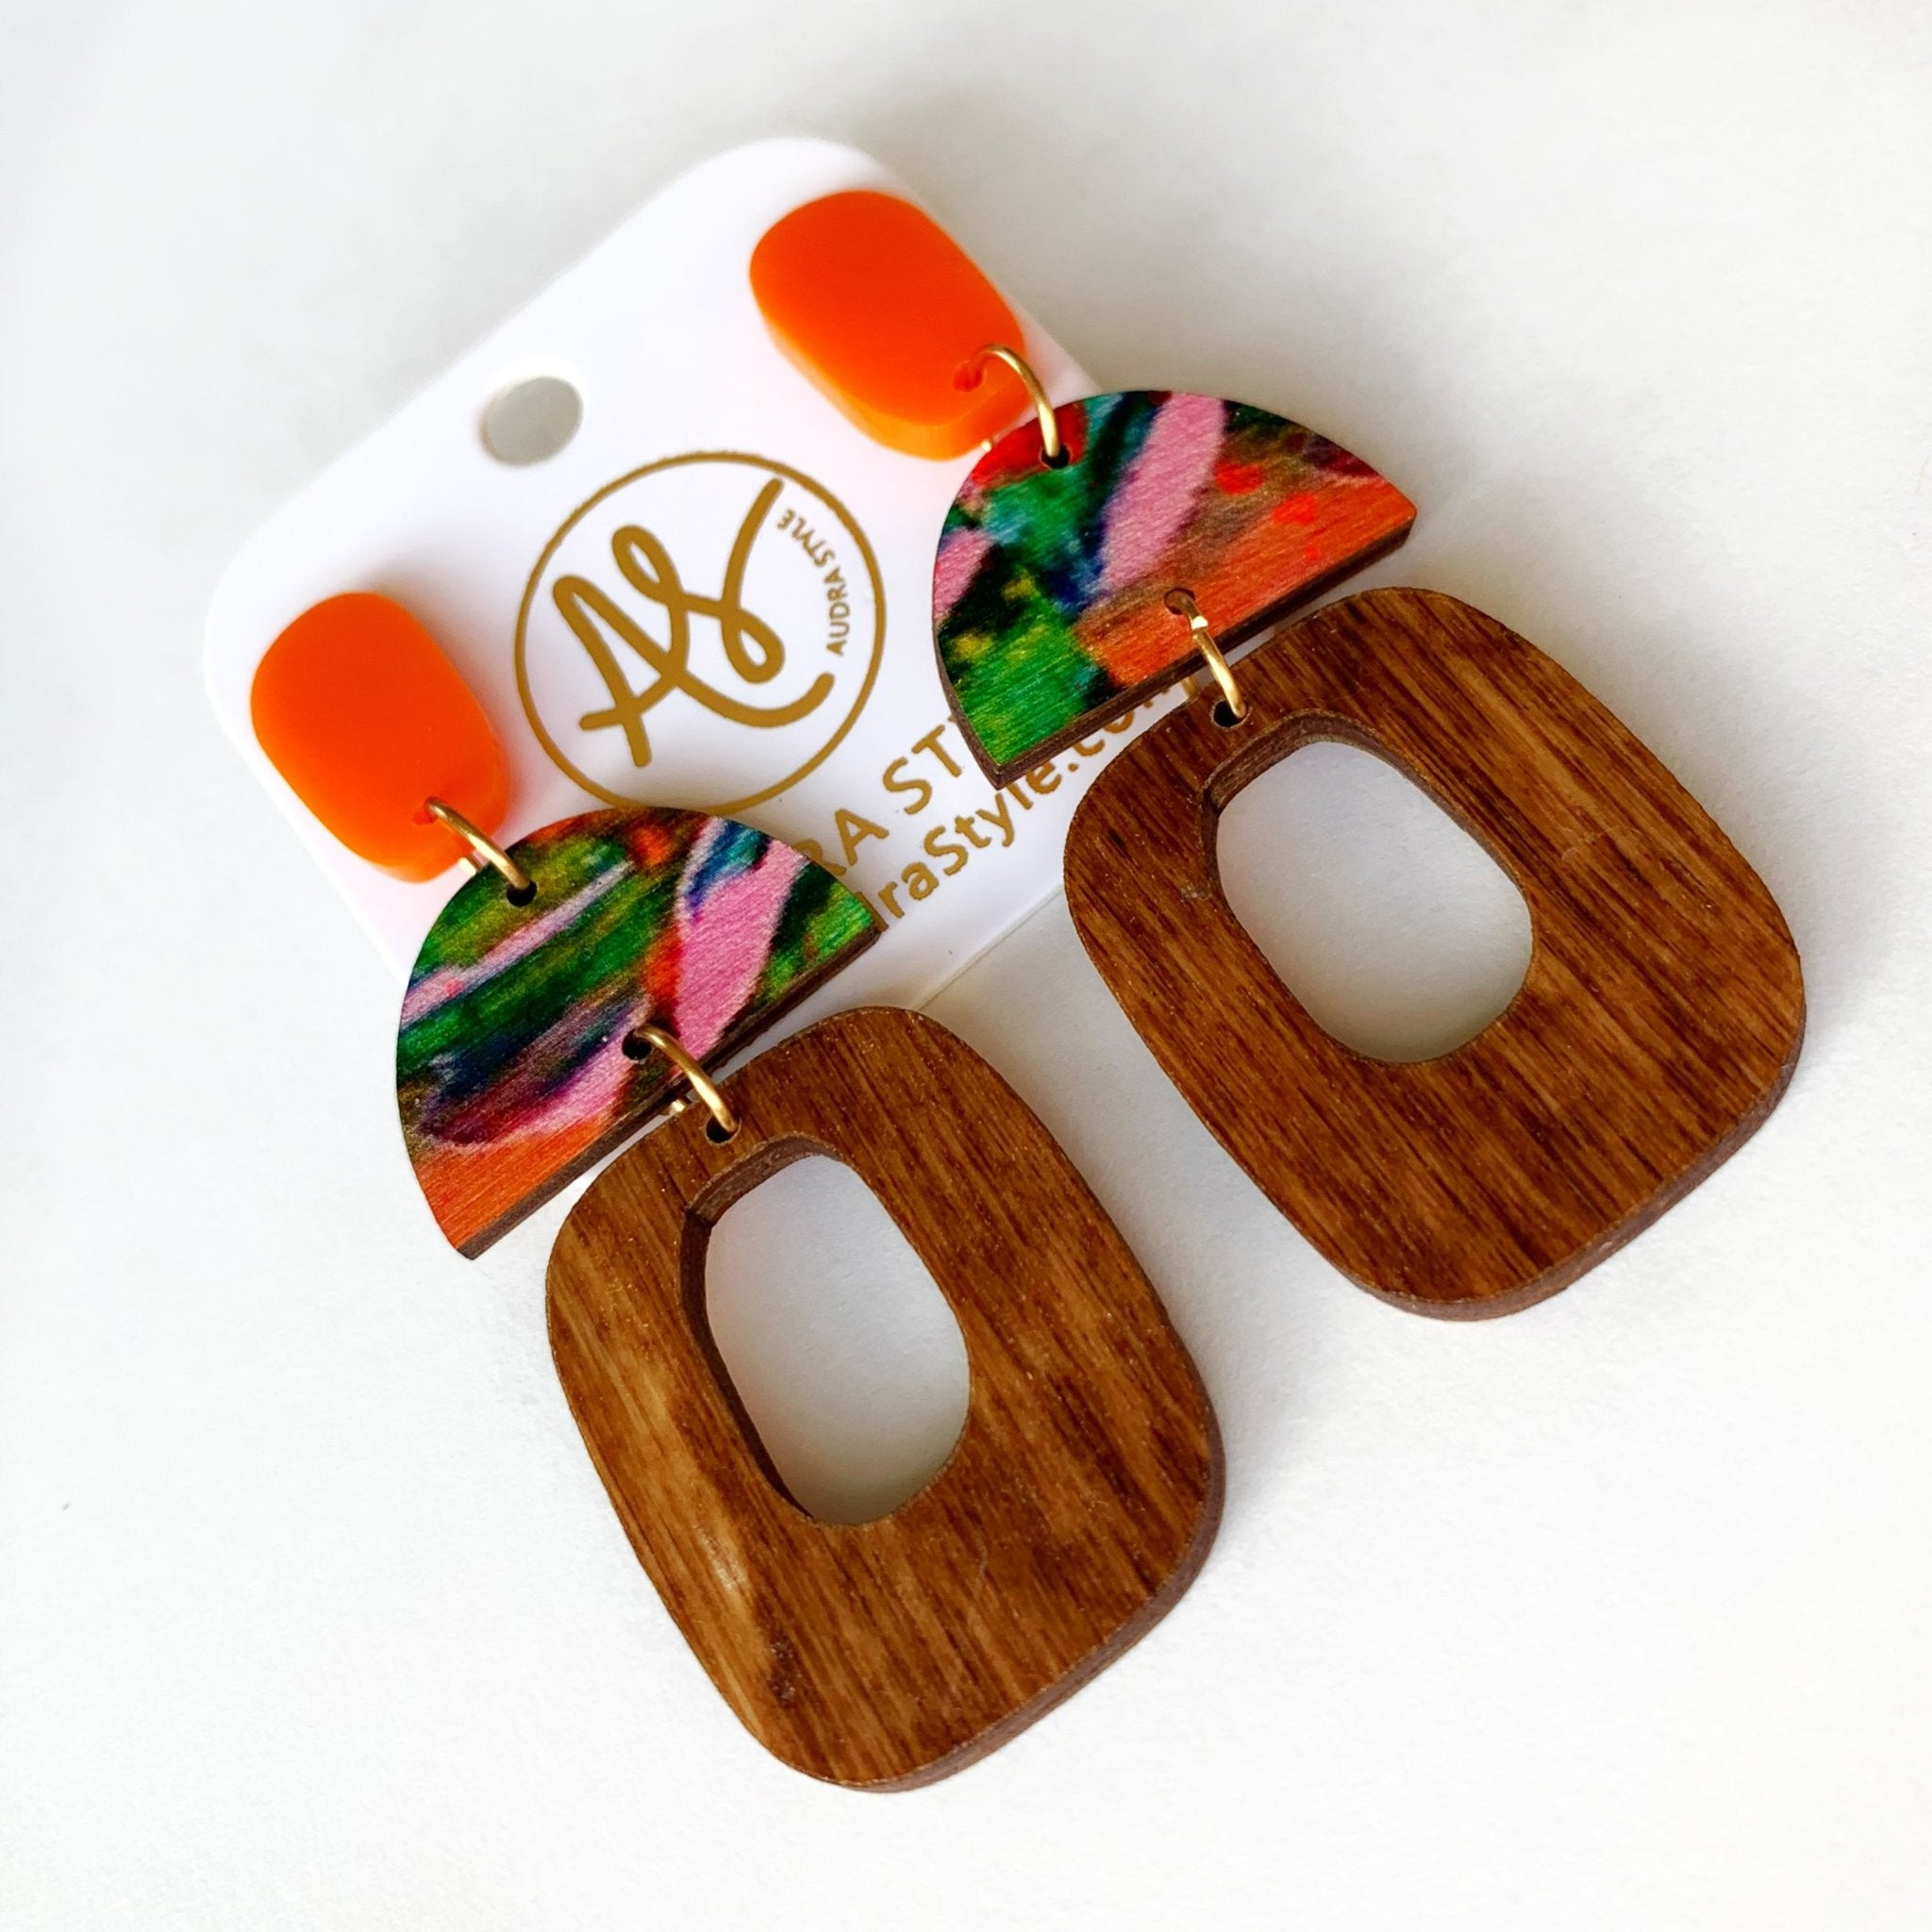 Marie Earring in Orange Wood